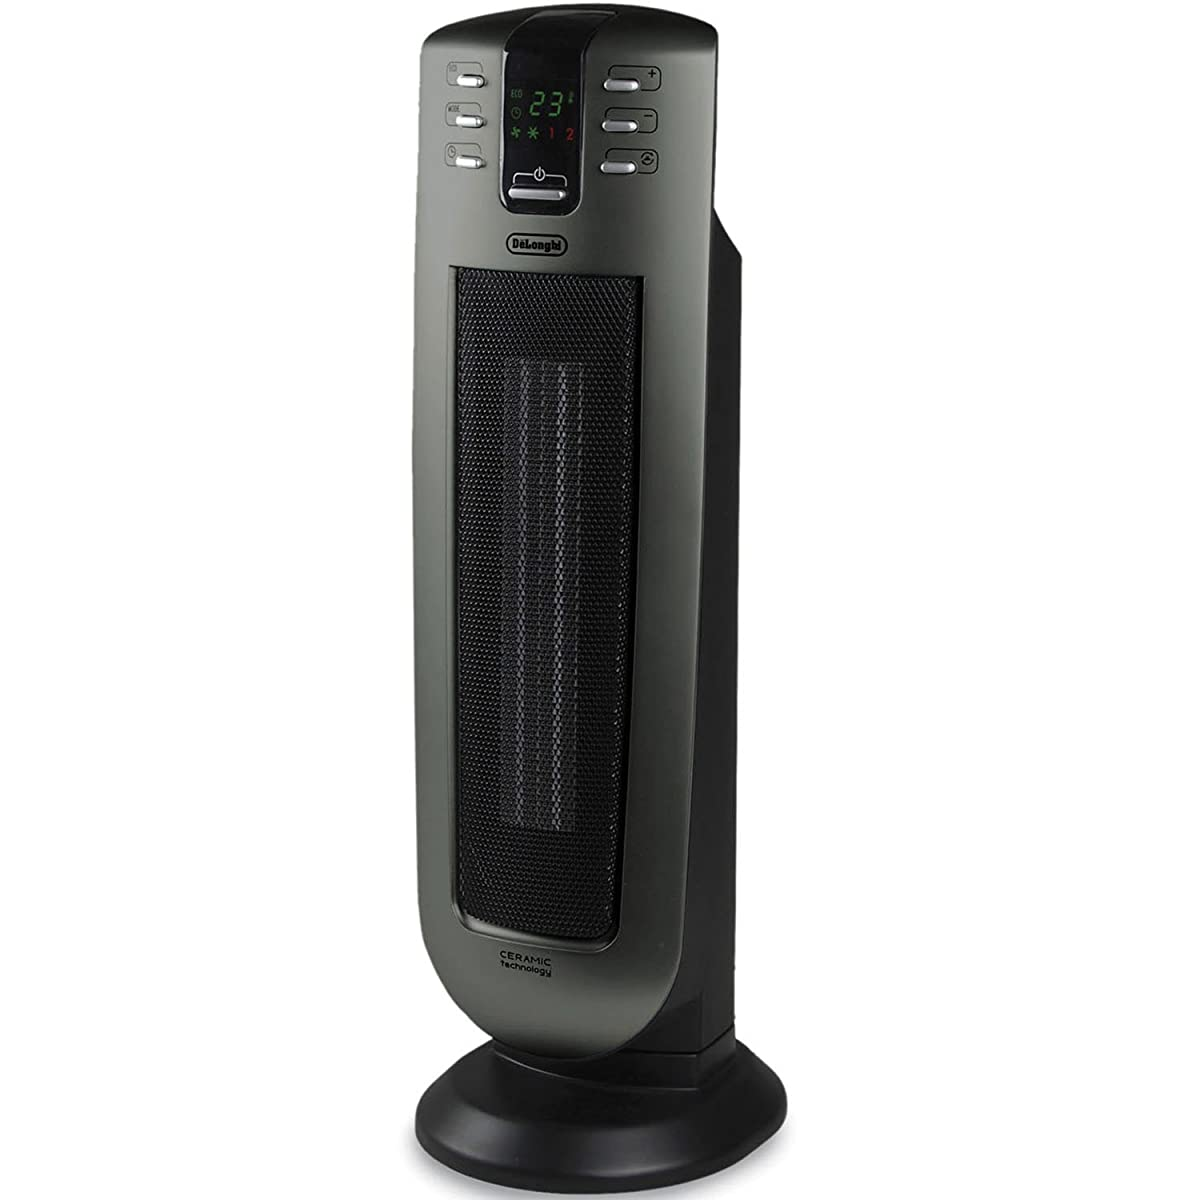 De'Longhi TCH7090ERD Safe Heat 1500W Ceramic Tower Heater with Remote control and ECO setting